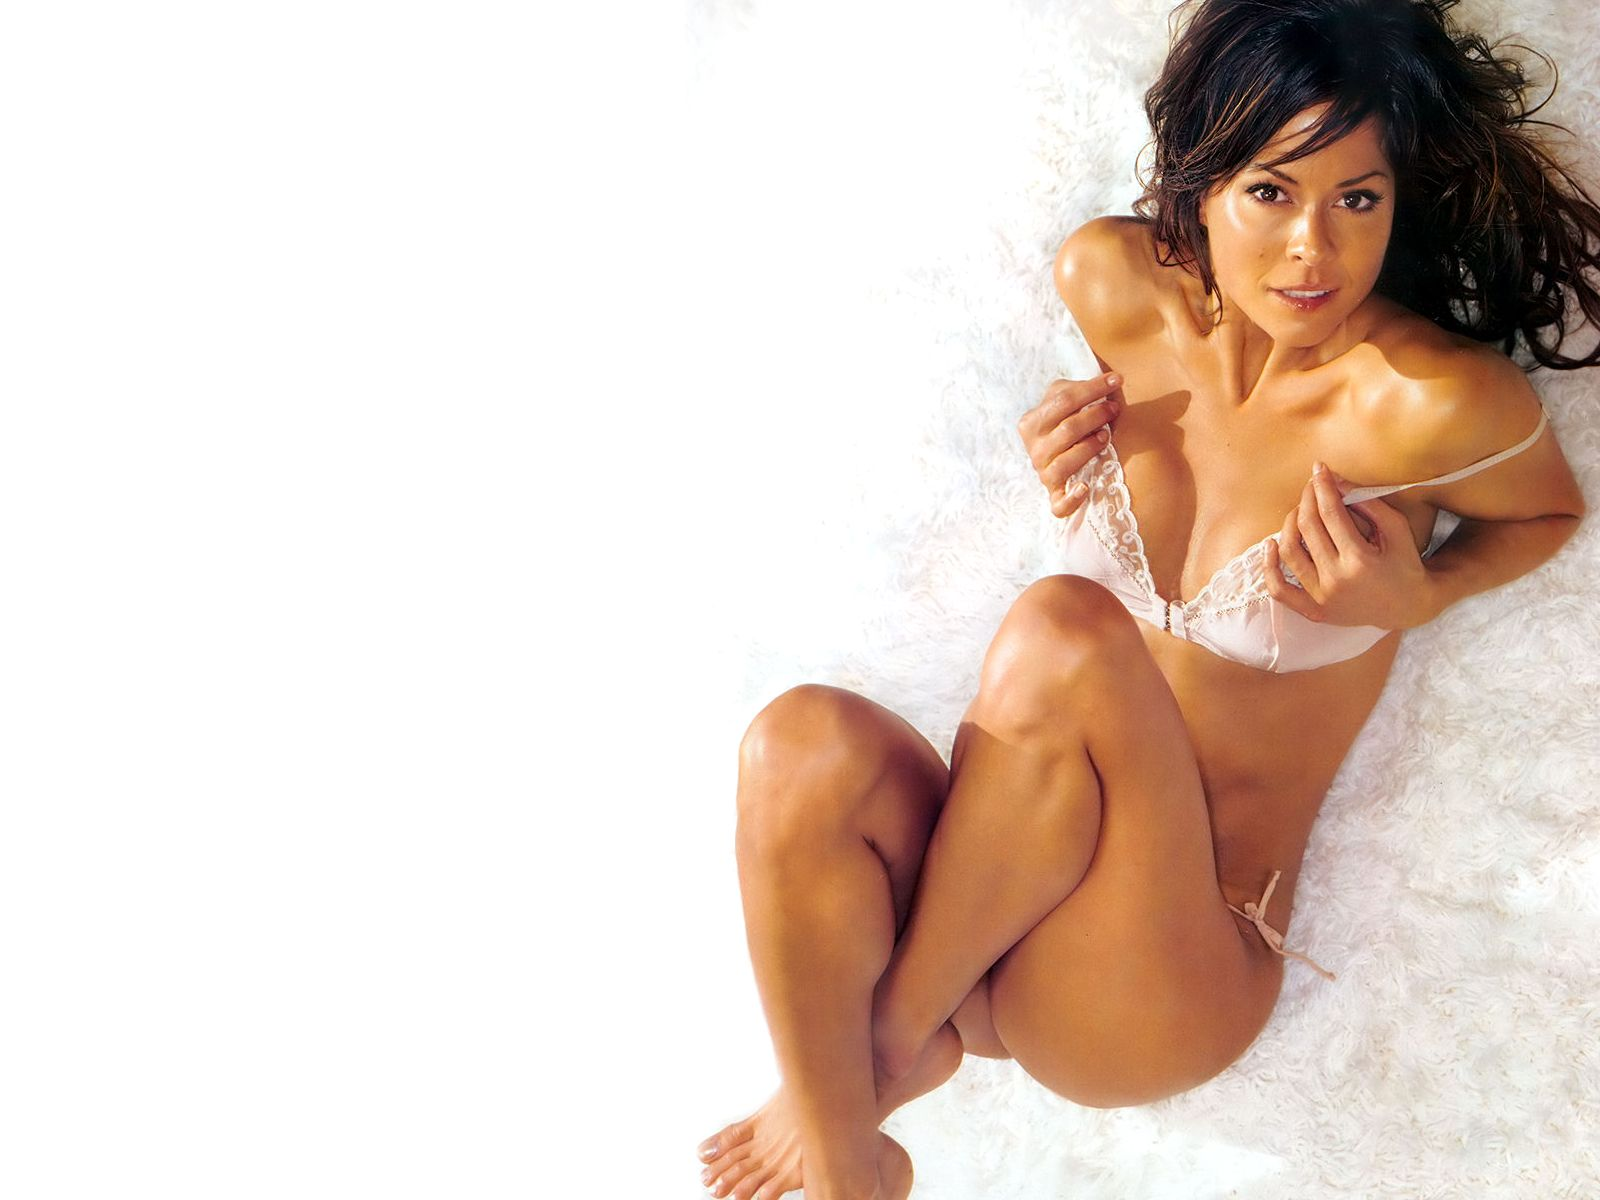 For the Brooke burke hot nude